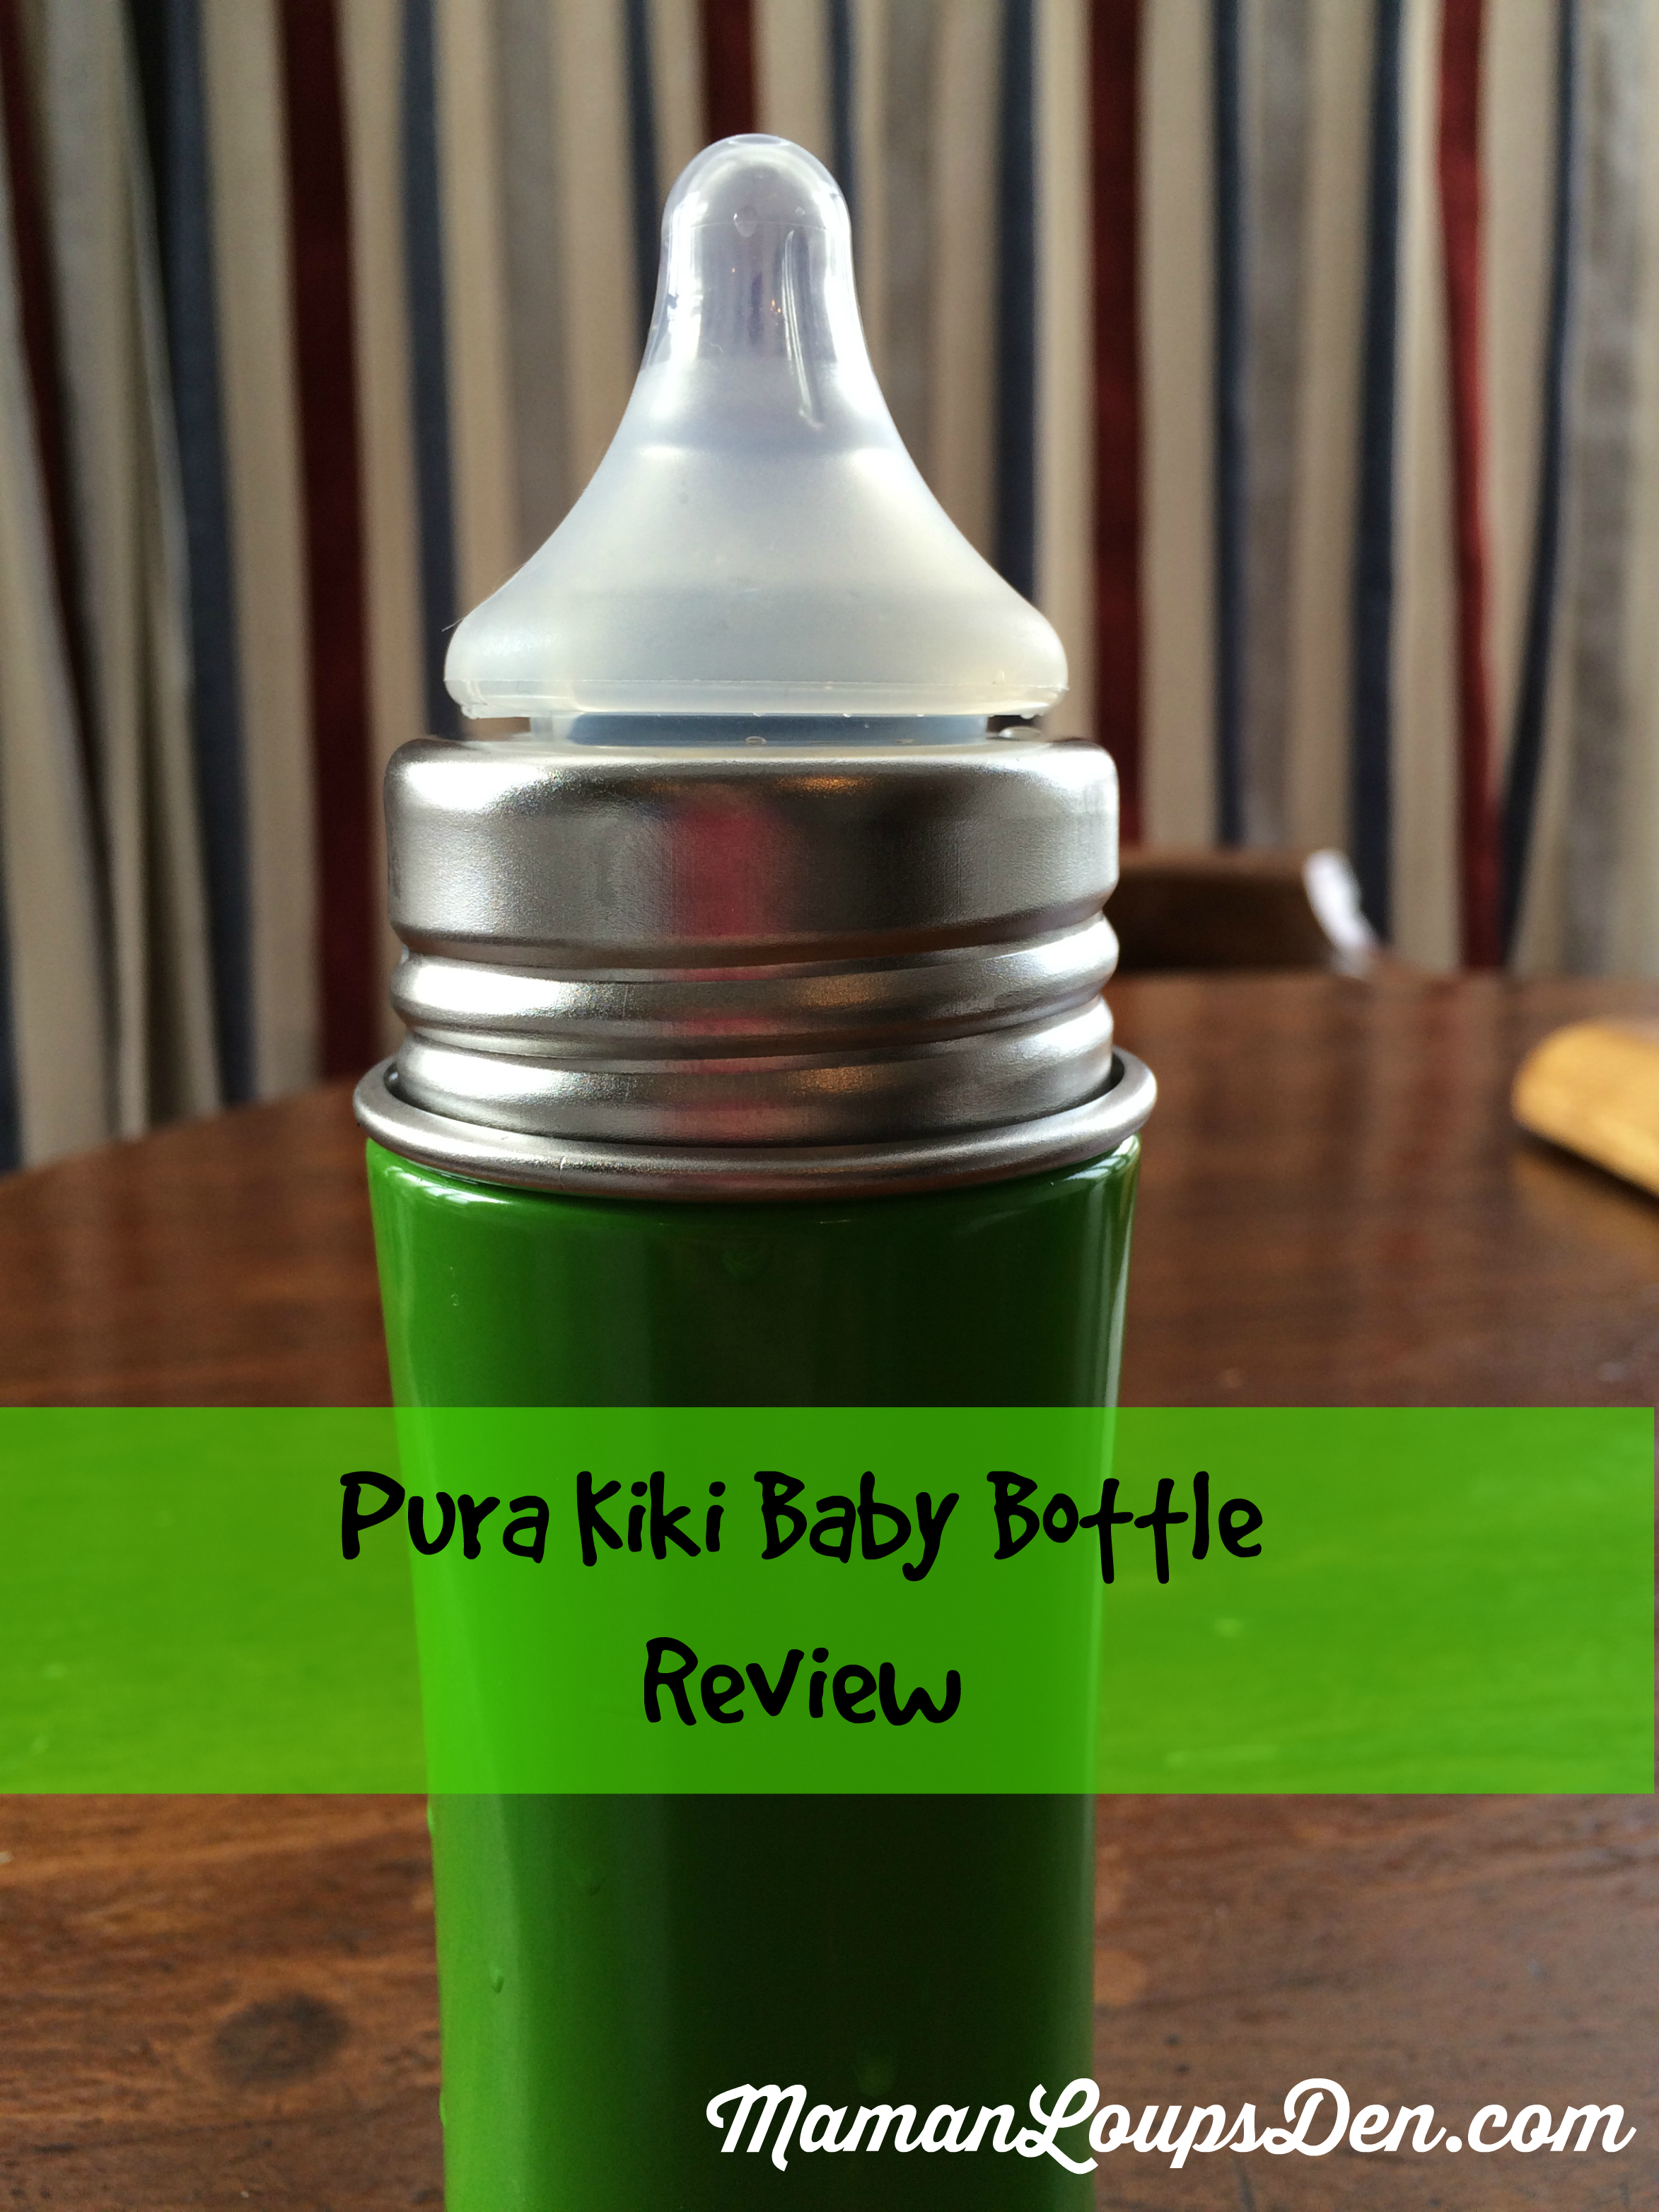 Pura Kiki Stainless Steel Baby Bottle Review